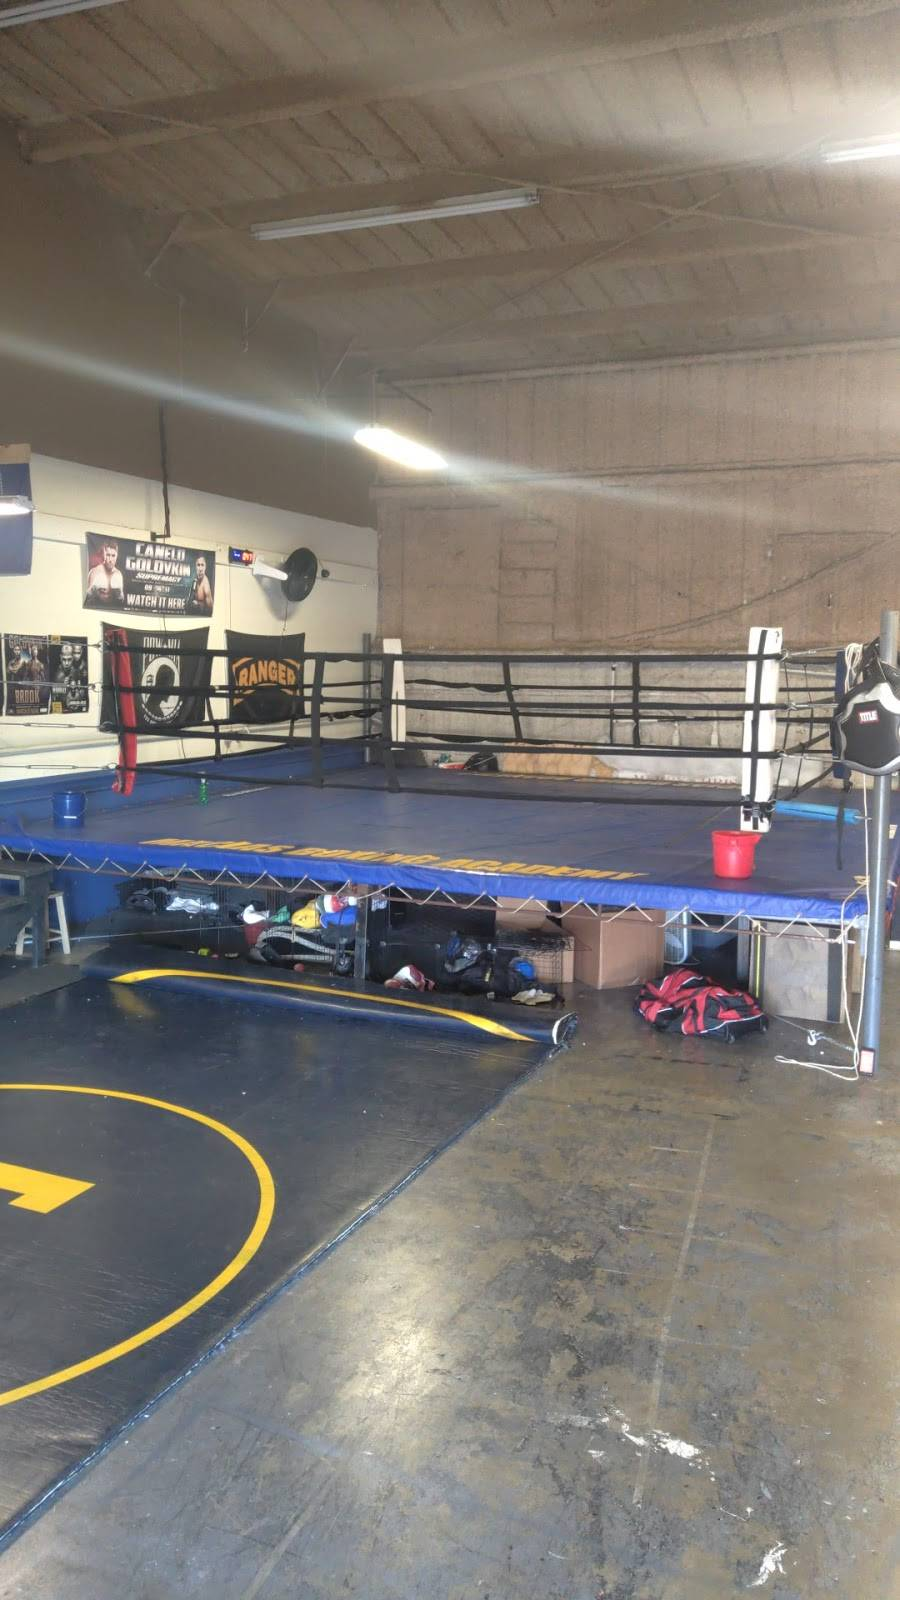 MBA Boxing Gym - gym  | Photo 3 of 3 | Address: 401 Farm to Market 685 #204, Pflugerville, TX 78660, USA | Phone: (512) 736-8443